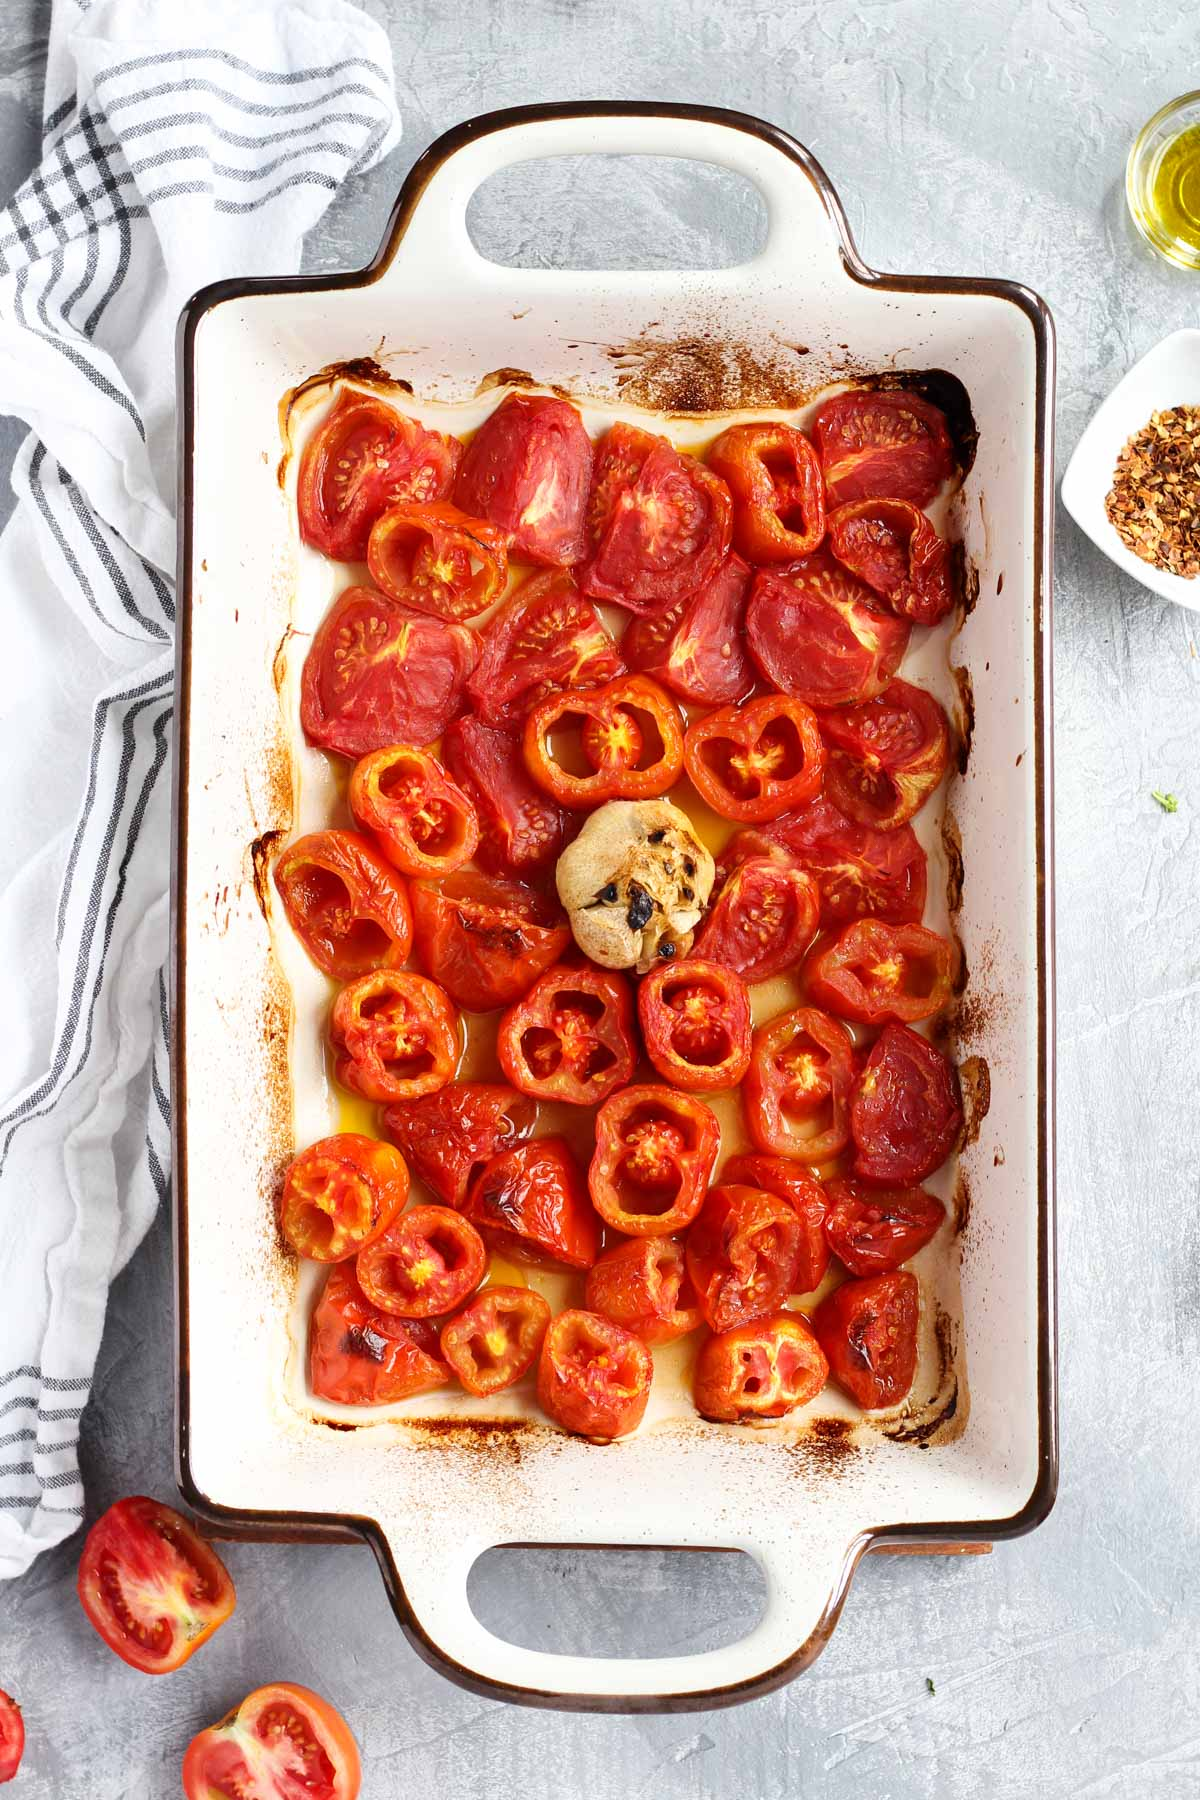 Roasted tomatoes and garlic in a pan.